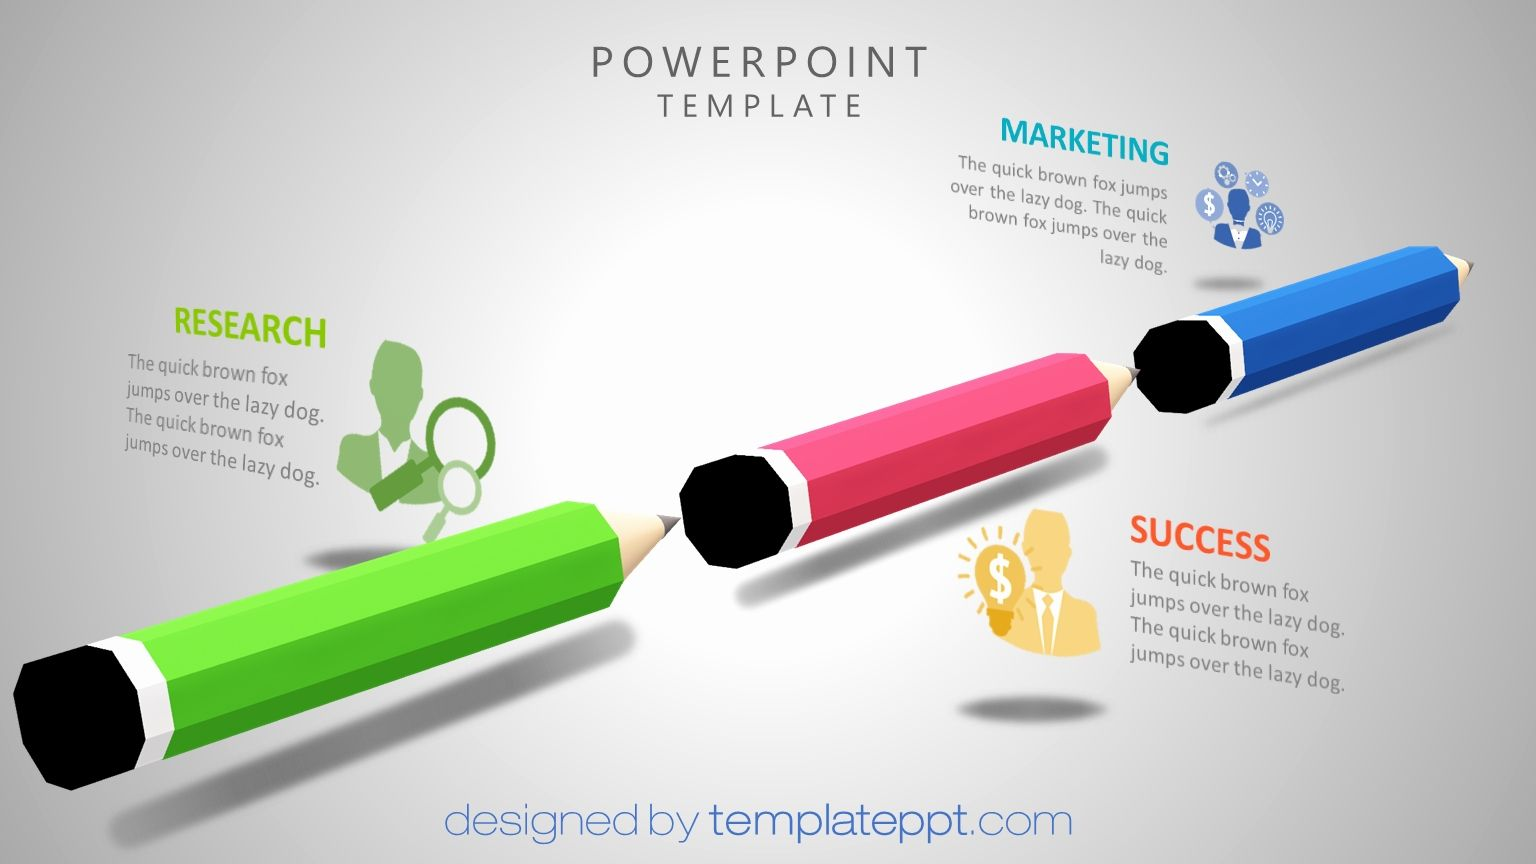 Powerpoint animated templates free download beautiful best animated powerpoint animated templates free download beautiful best animated ppt templates free animation effects toneelgroepblik Gallery